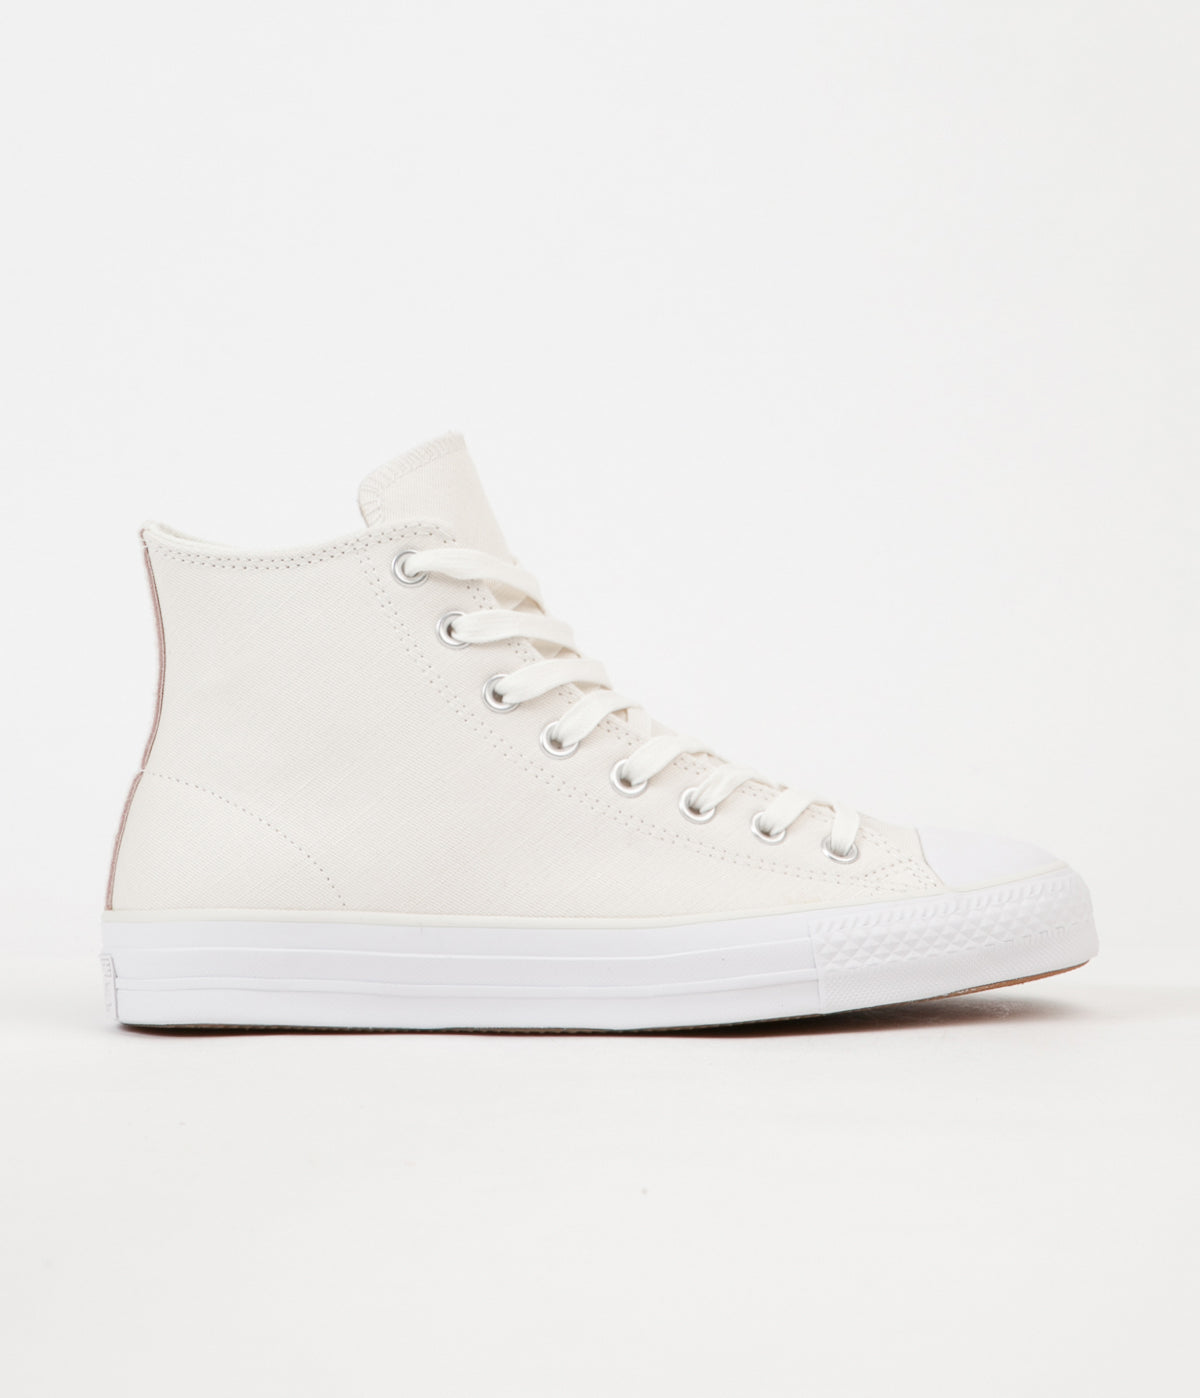 Converse CTAS Pro Hi Shoes - Egret / Dusk Pink / Light Fawn